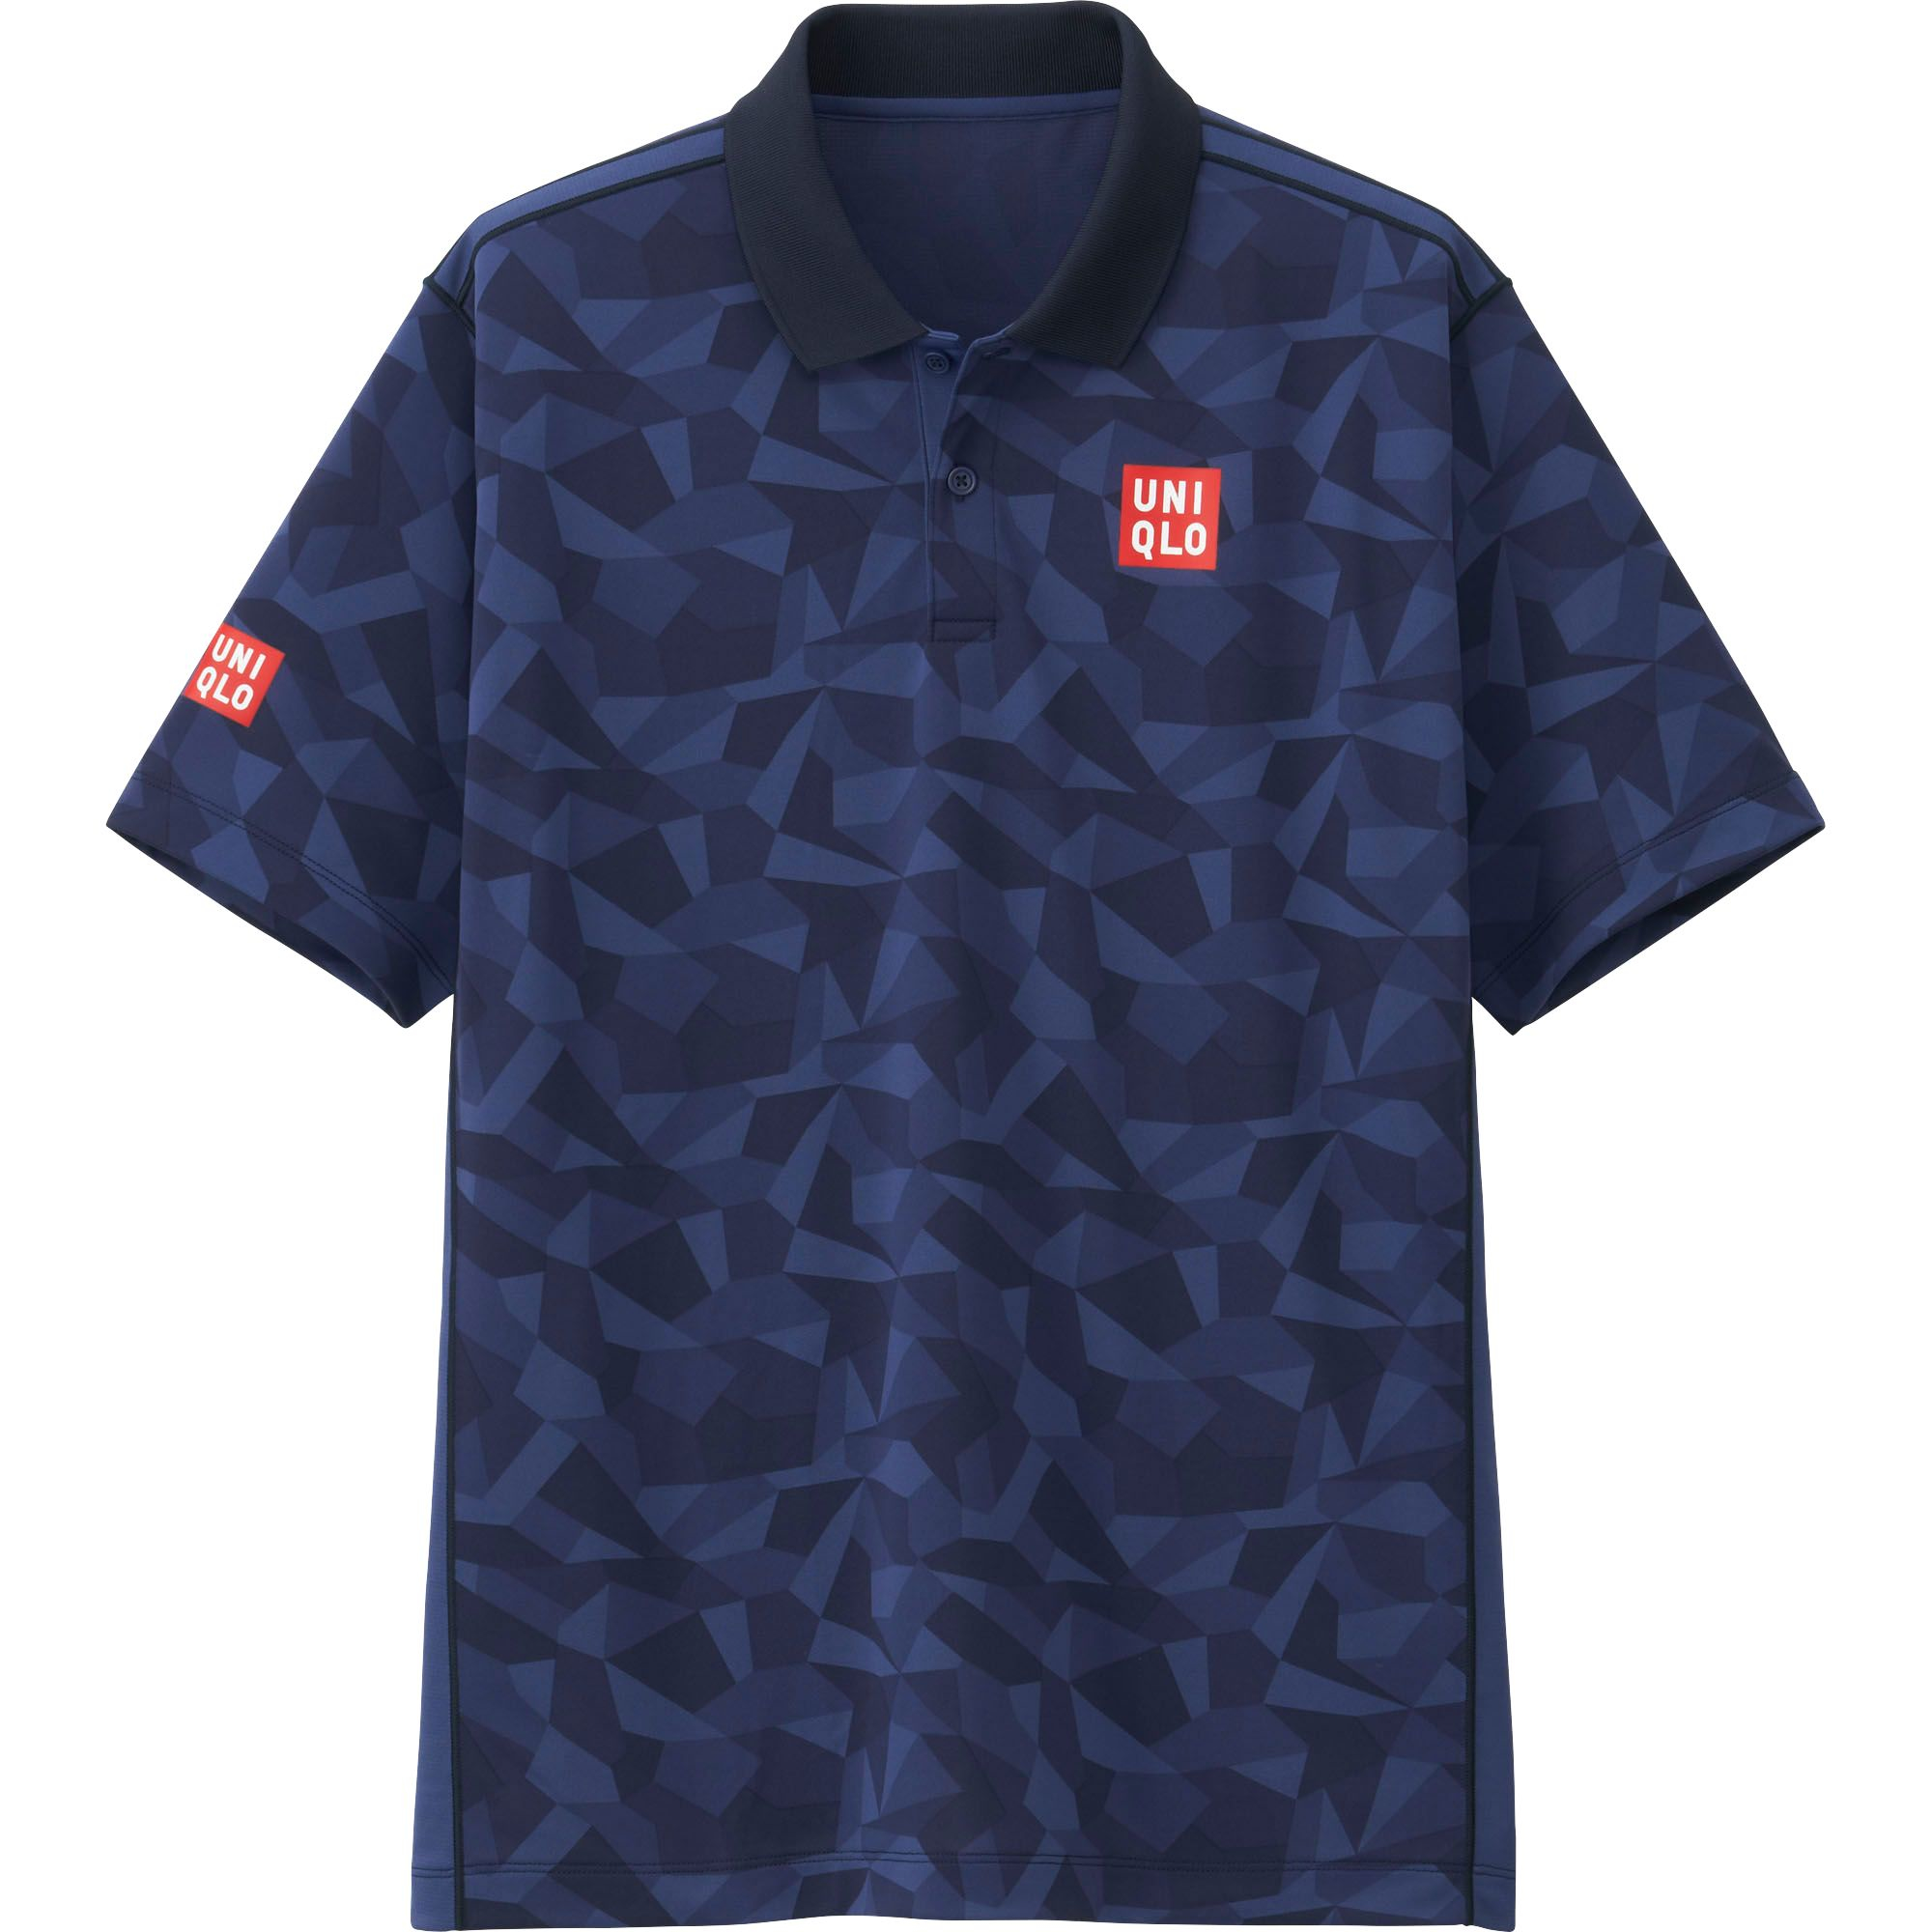 Uniqlo Men Nk Dry Ex Short Sleeve Polo Shirt 16us In Blue